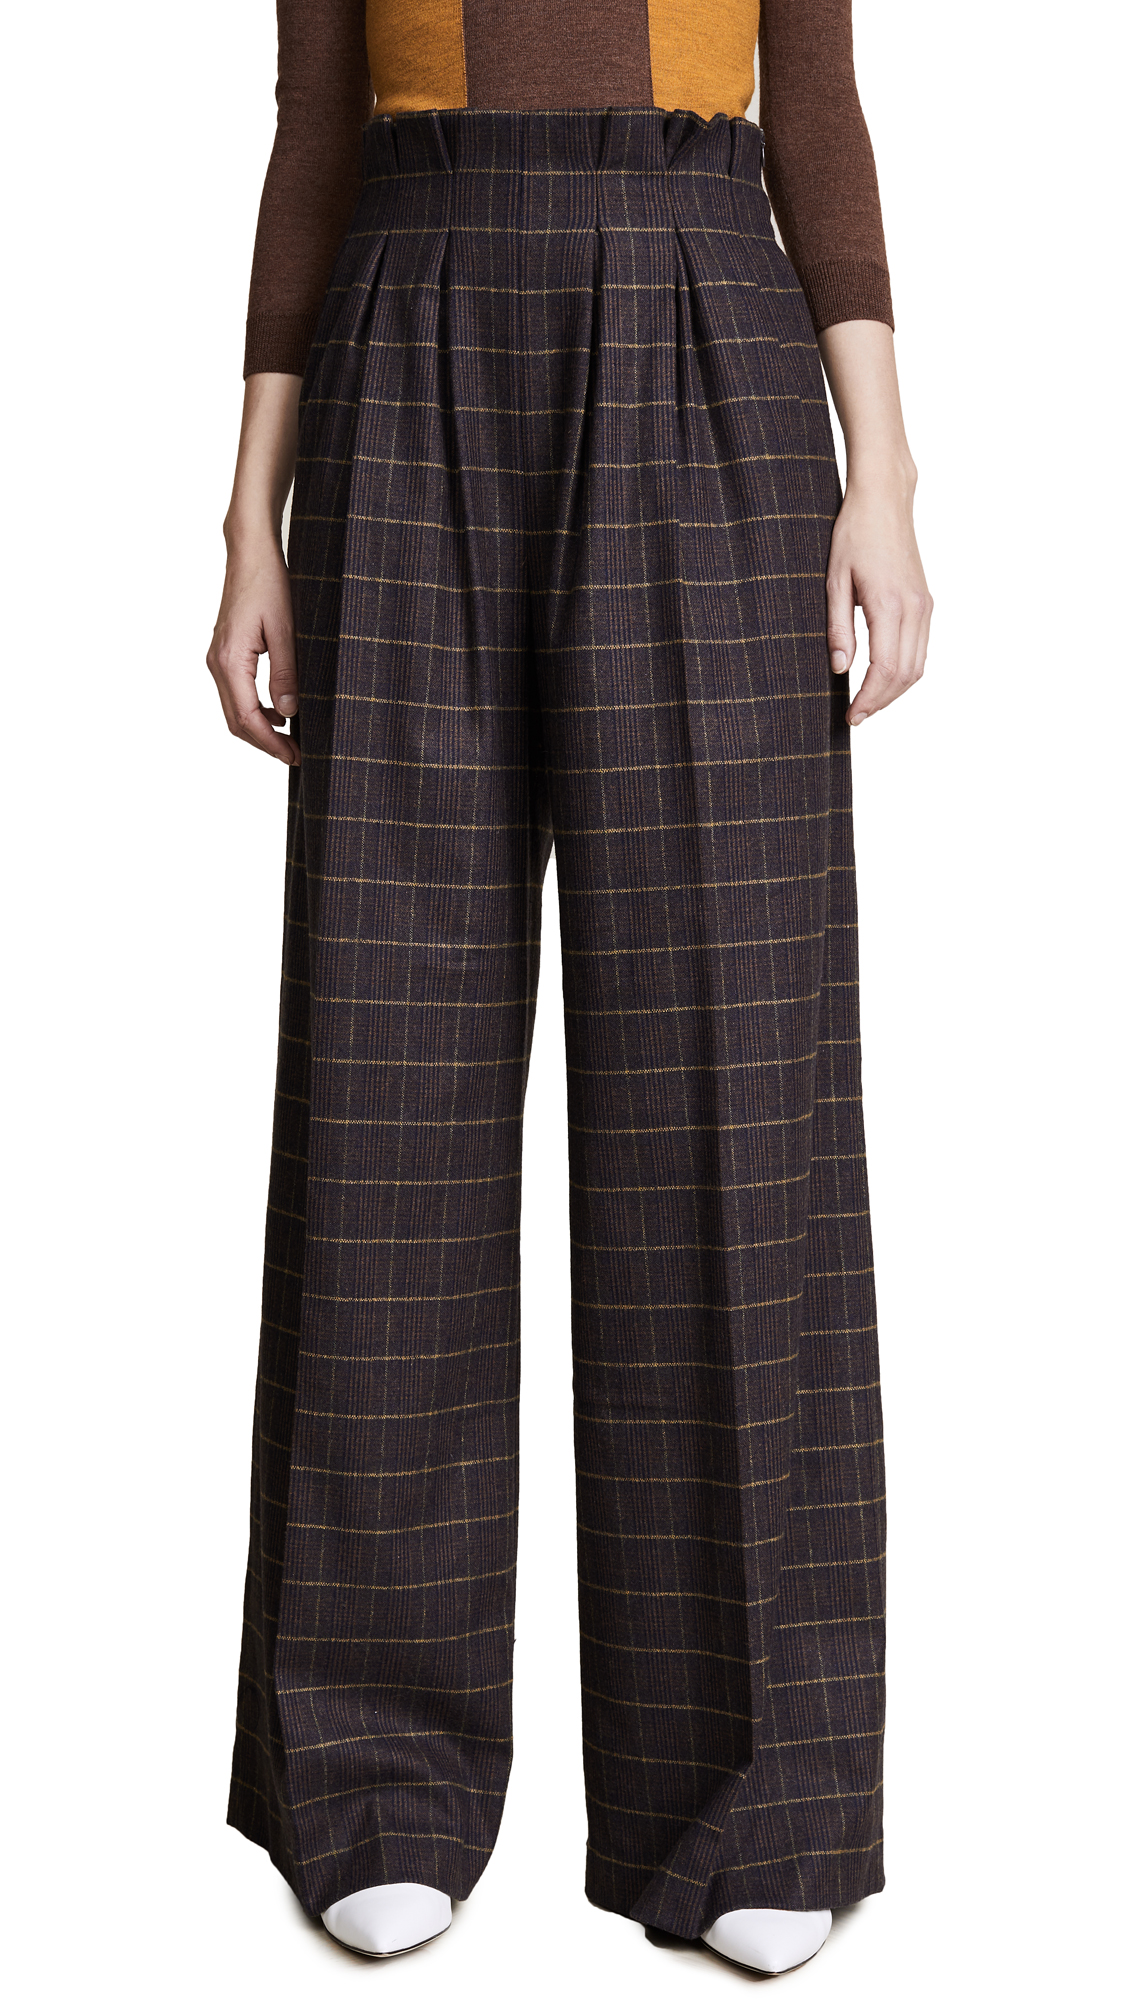 Stella Jean Paper Bag Waist Pants - Brown